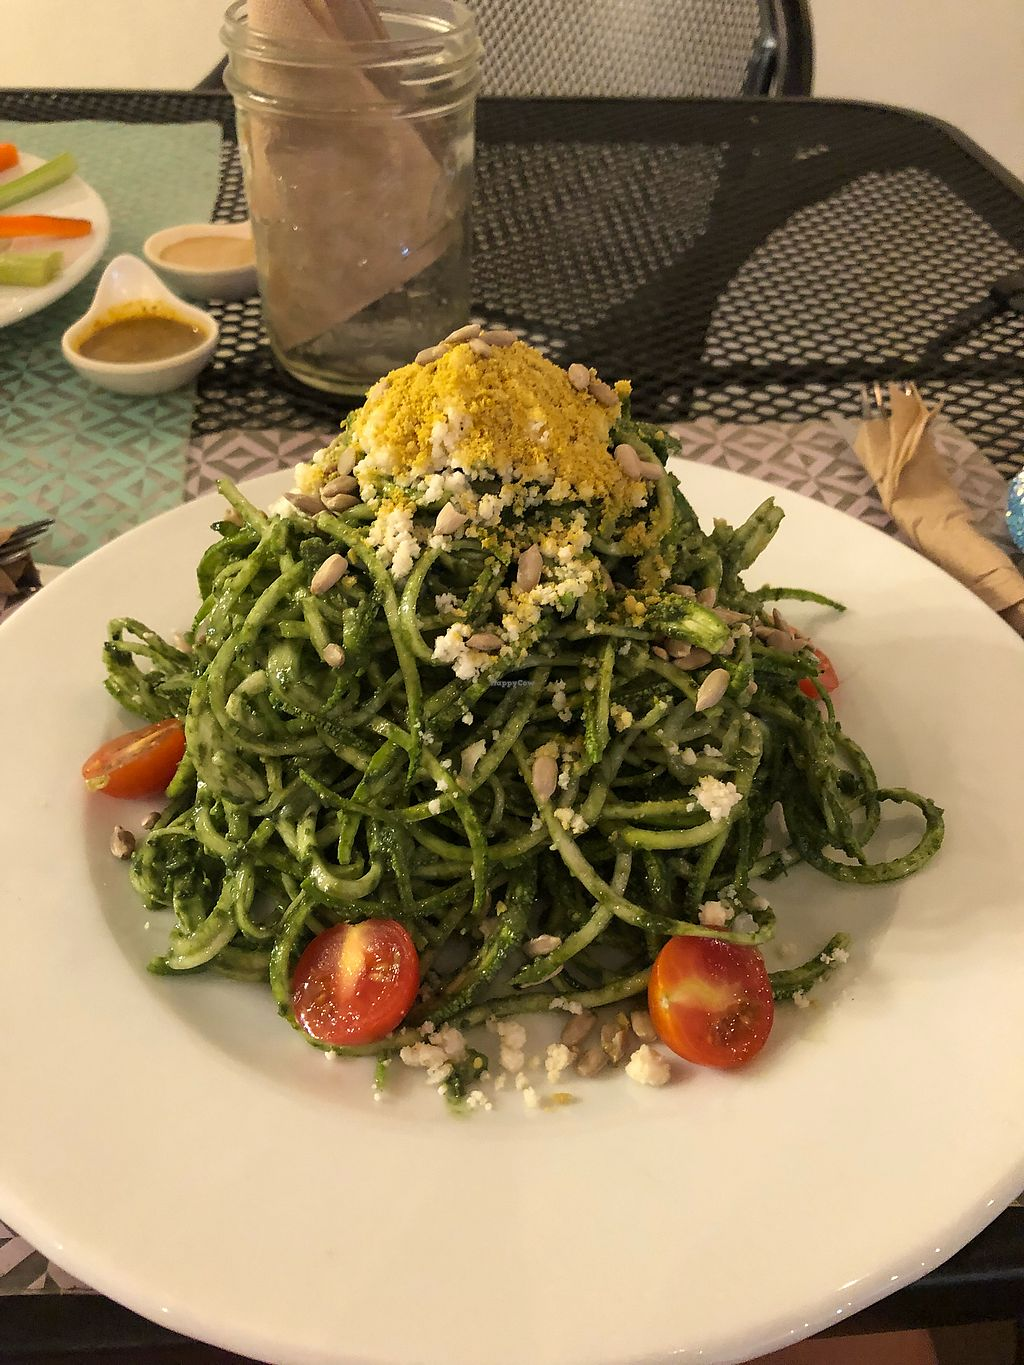 "Photo of La Senda Restaurante  by <a href=""/members/profile/natveganmermaid"">natveganmermaid</a> <br/>Raw pesto zucchini  <br/> May 7, 2018  - <a href='/contact/abuse/image/37678/396317'>Report</a>"